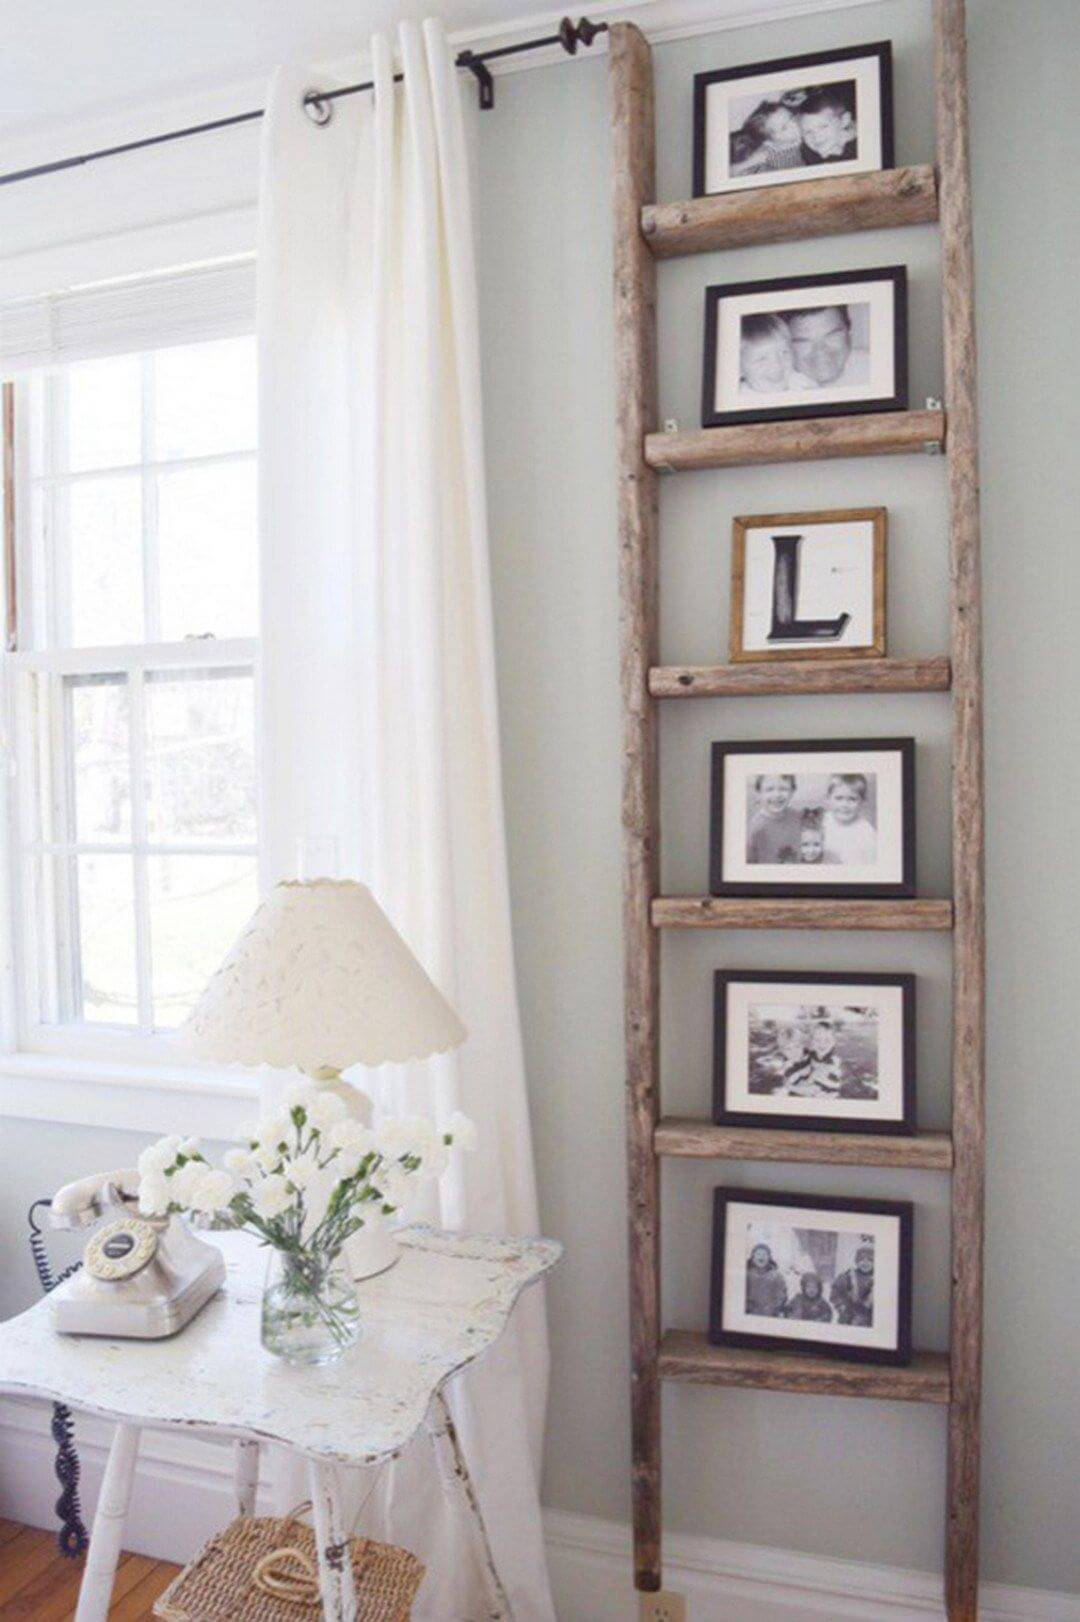 Vertical ladder photo frame display